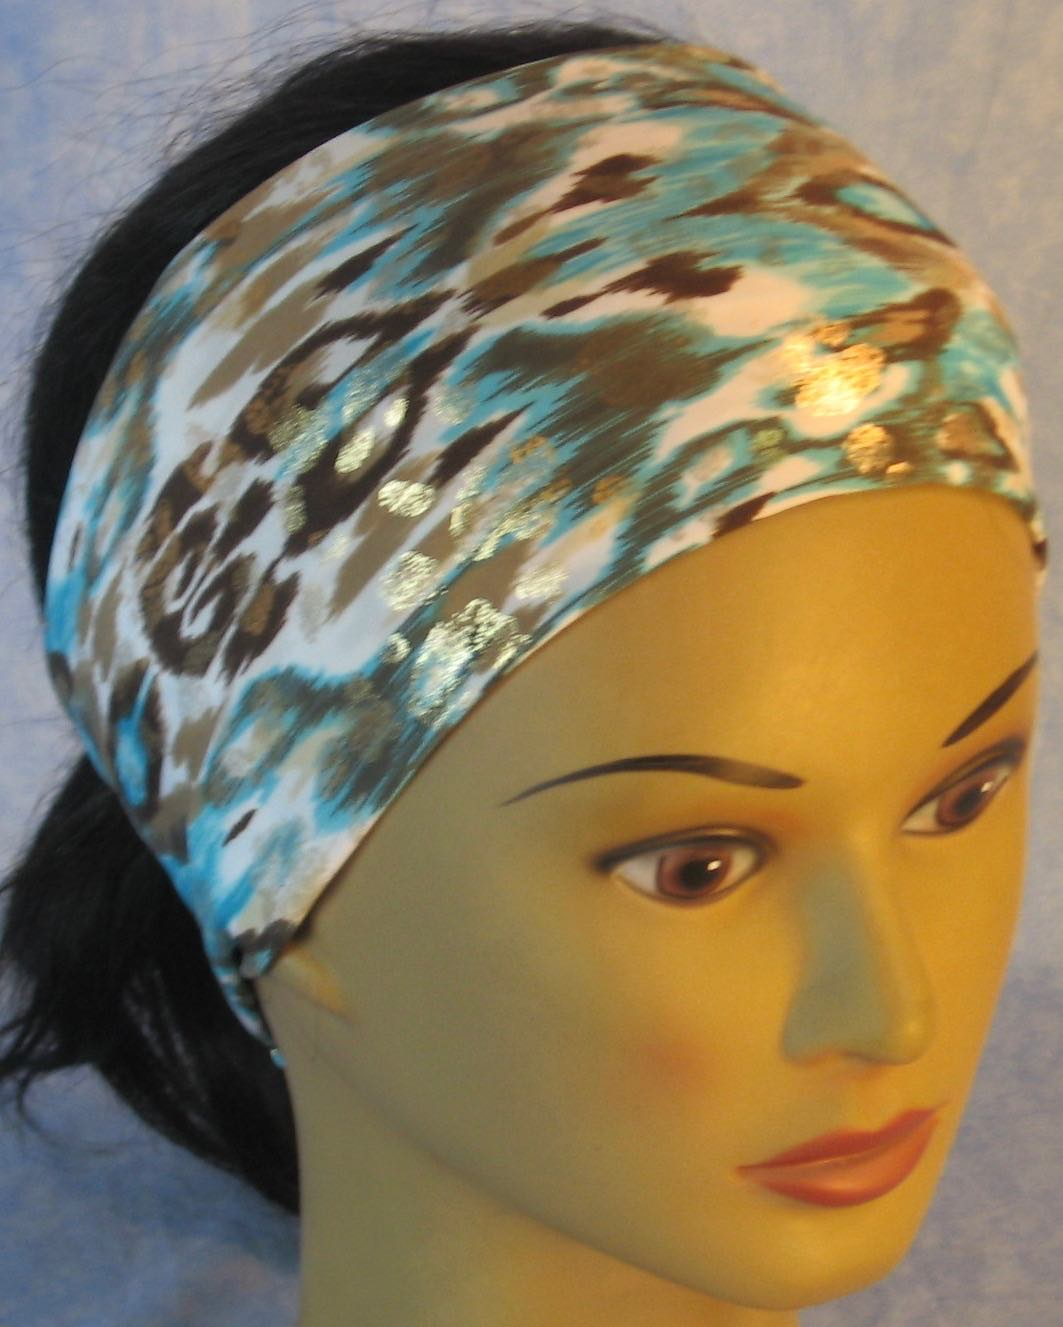 Headband-Turquoise Brown Brush Marks Gold Performance Knit-Adult M